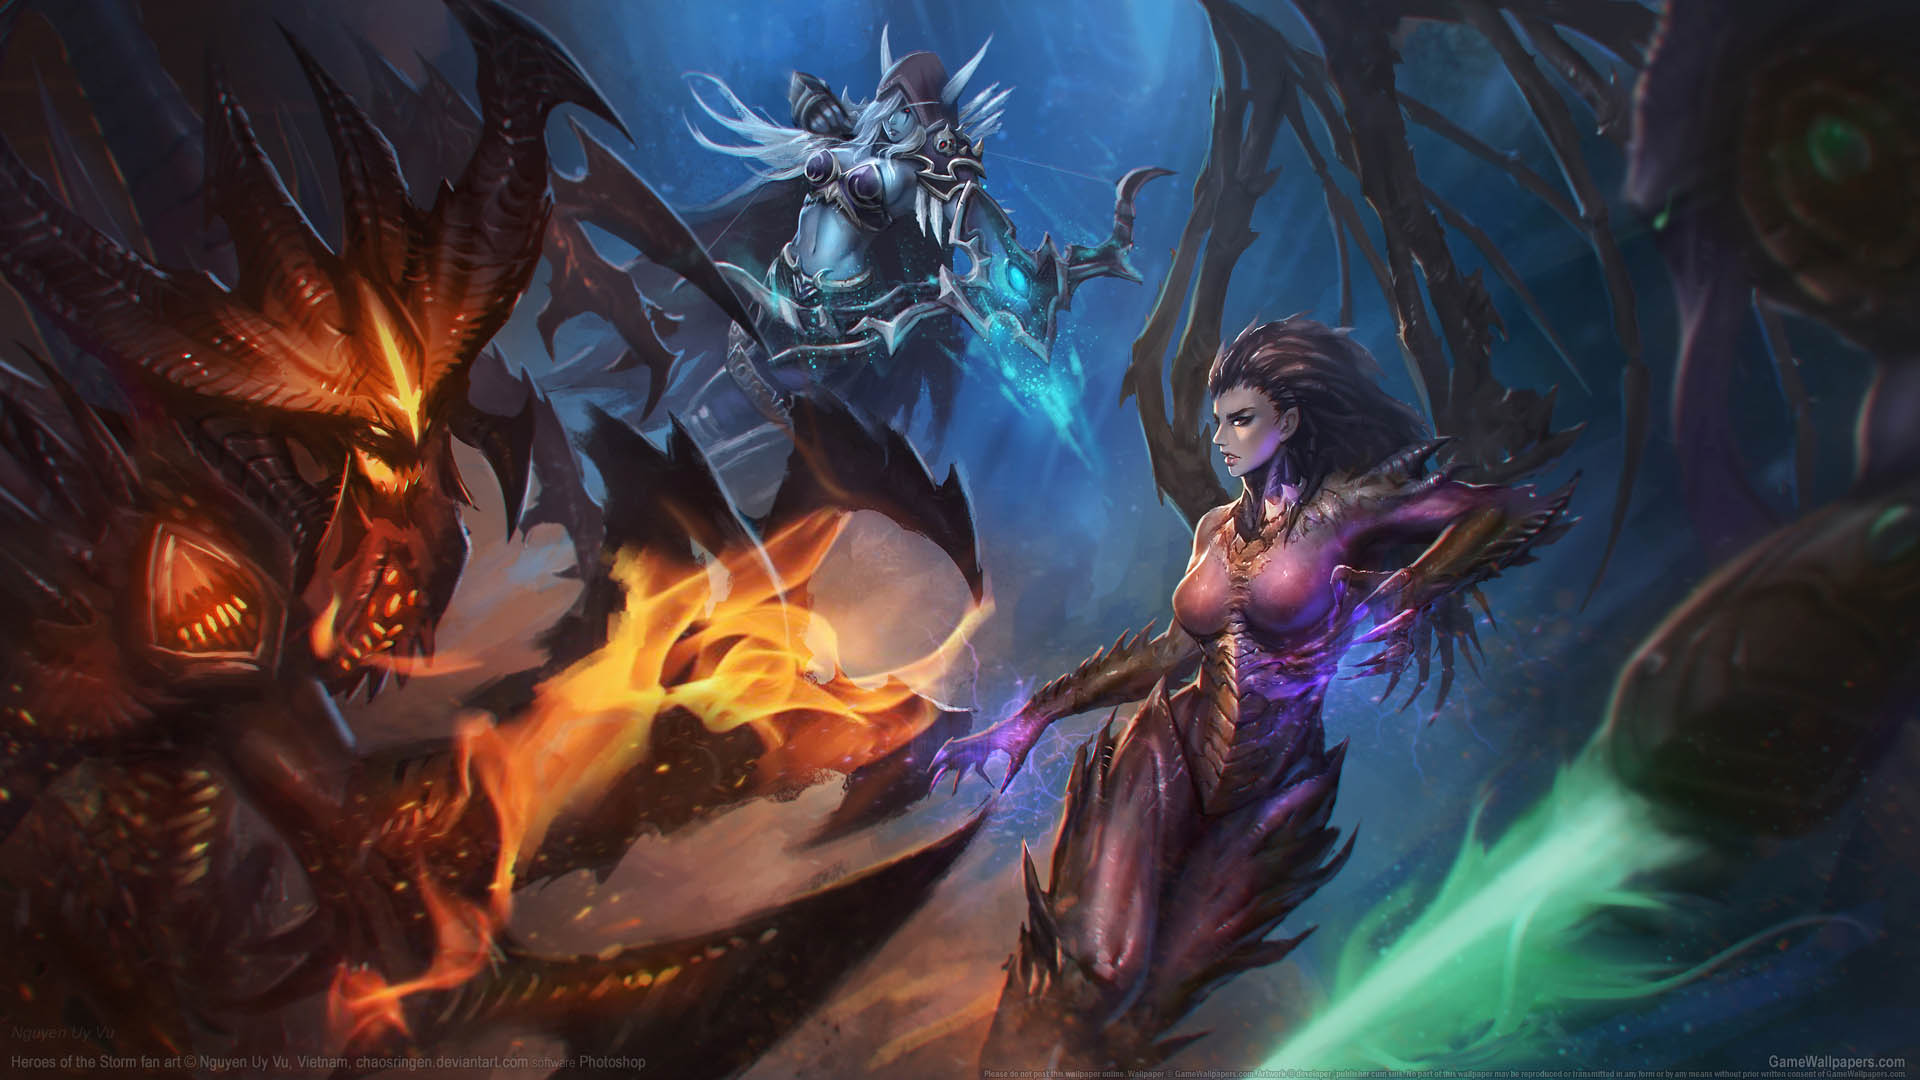 Heroes Of The Storm Fan Art Fondo De Escritorio 01 1920x1080